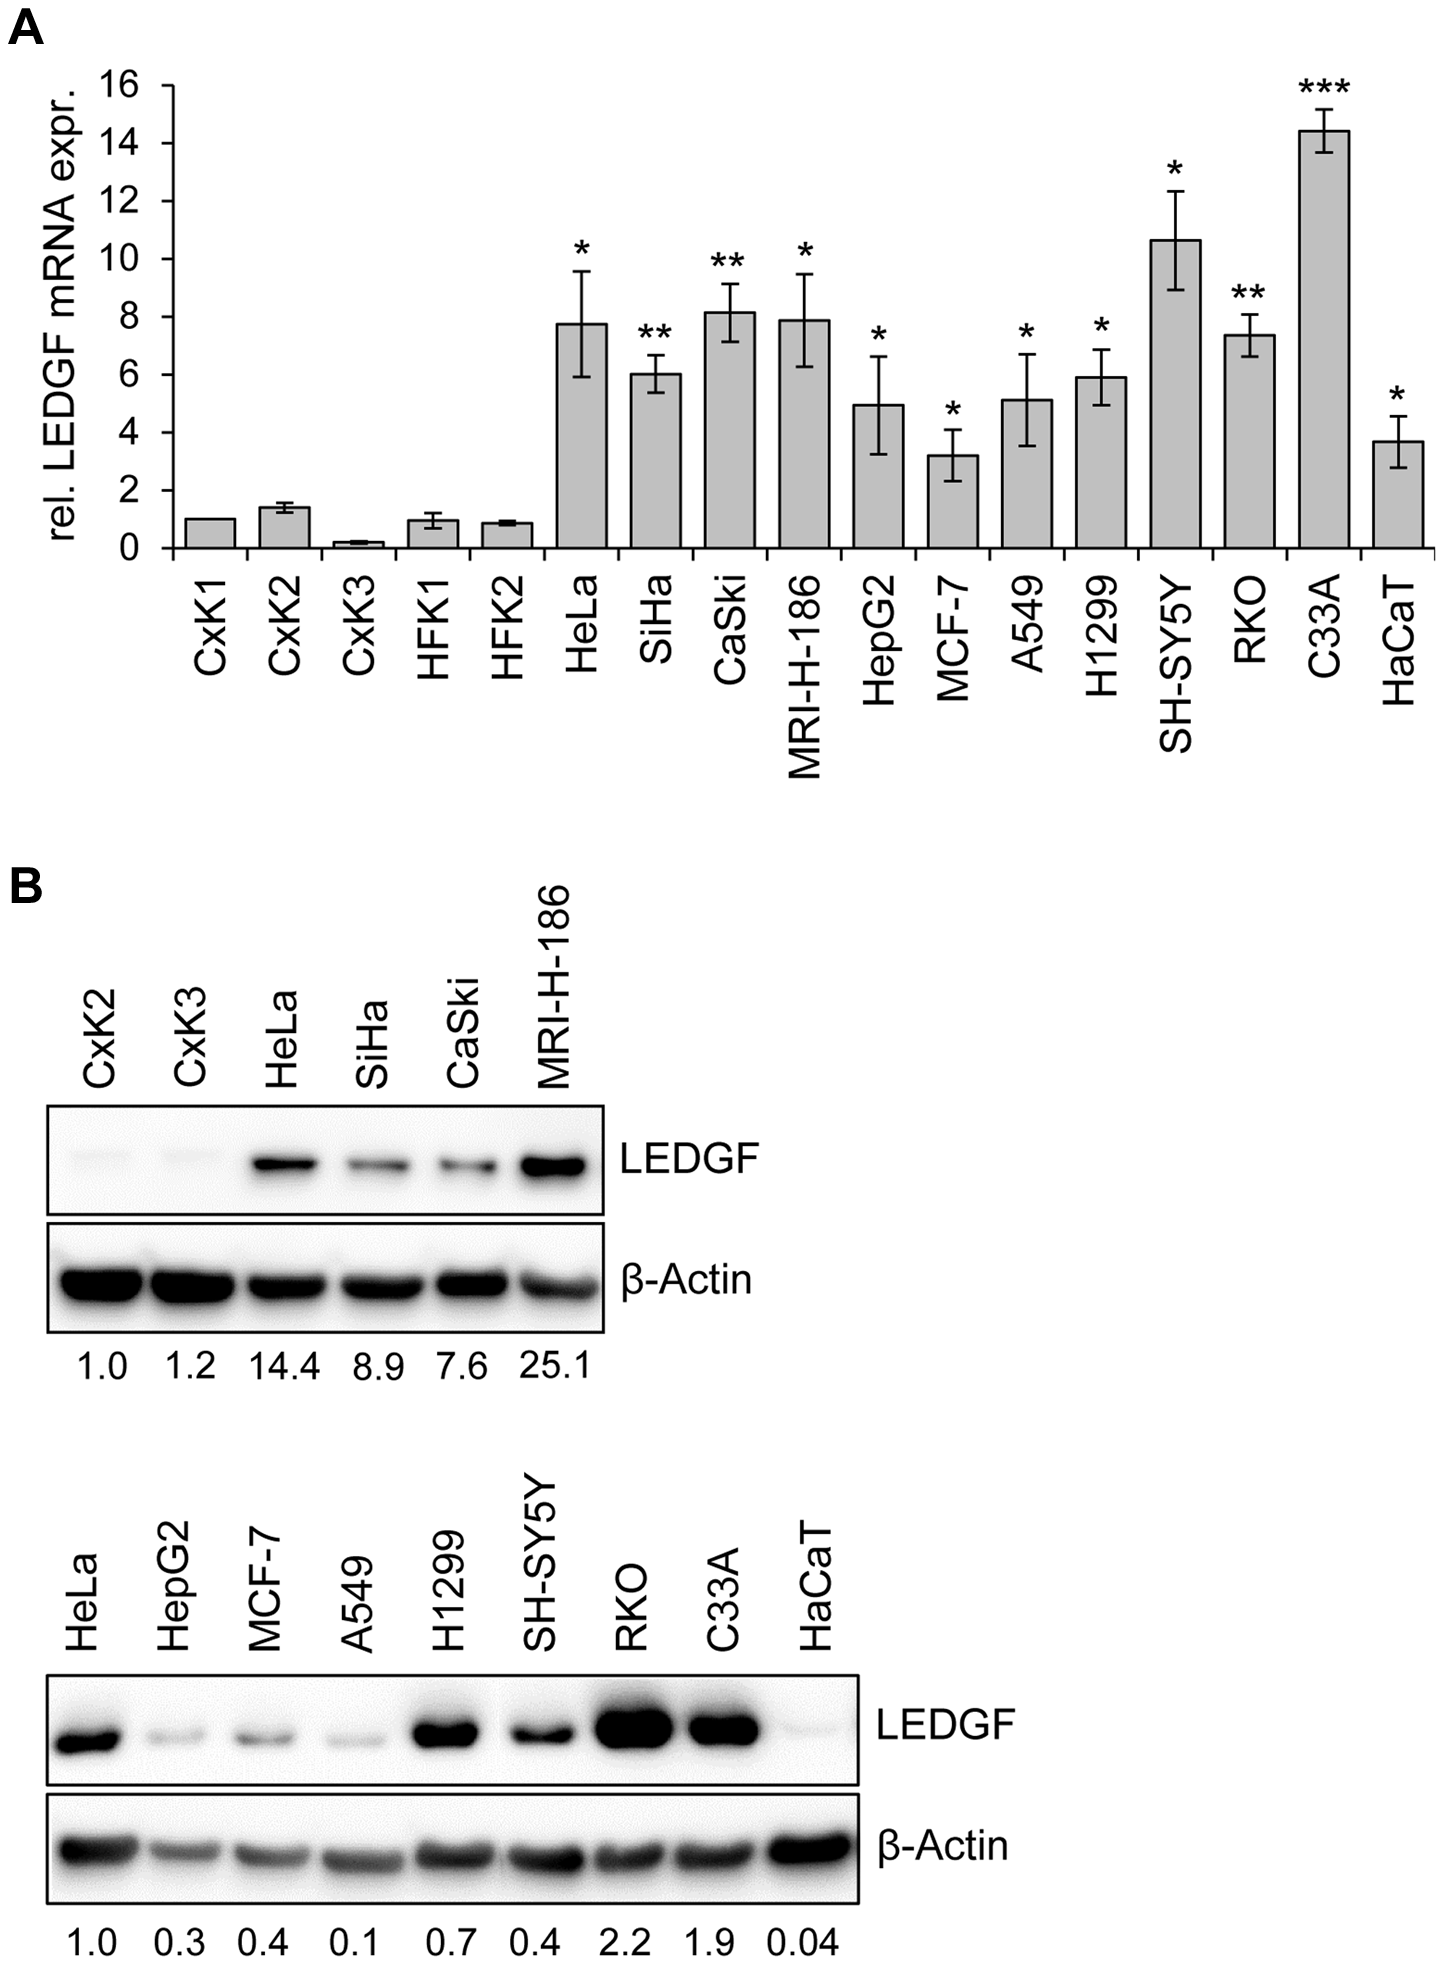 LEDGF expression in primary human keratinocytes and in HPV-positive and HPV-negative cell lines.